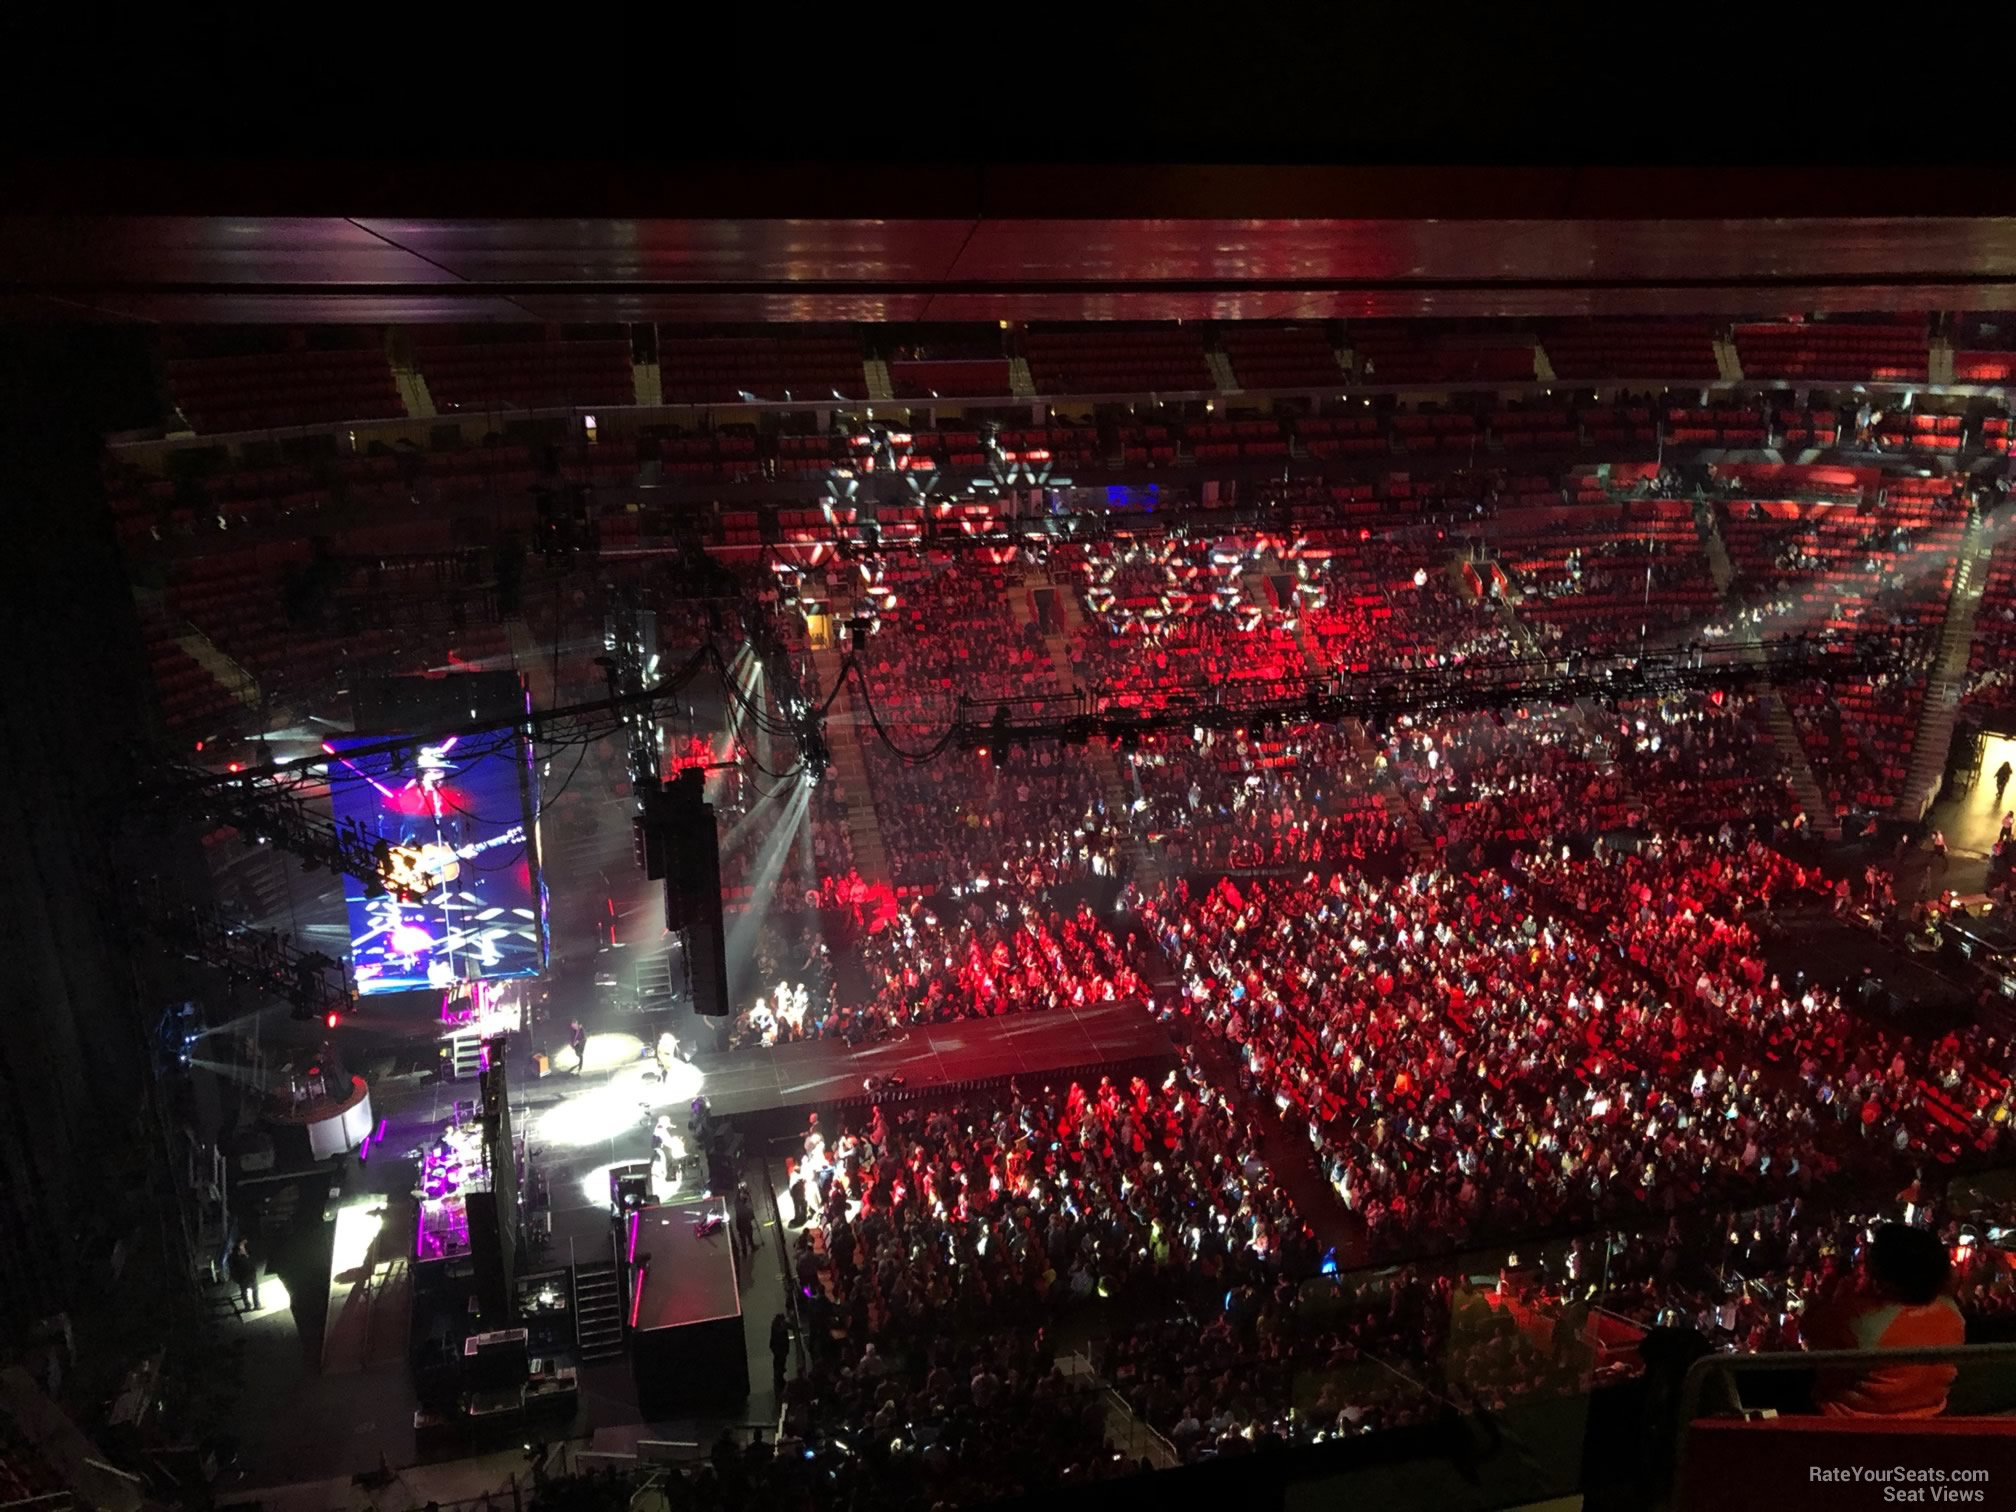 Little Caesars Arena Section 229 Concert Seating